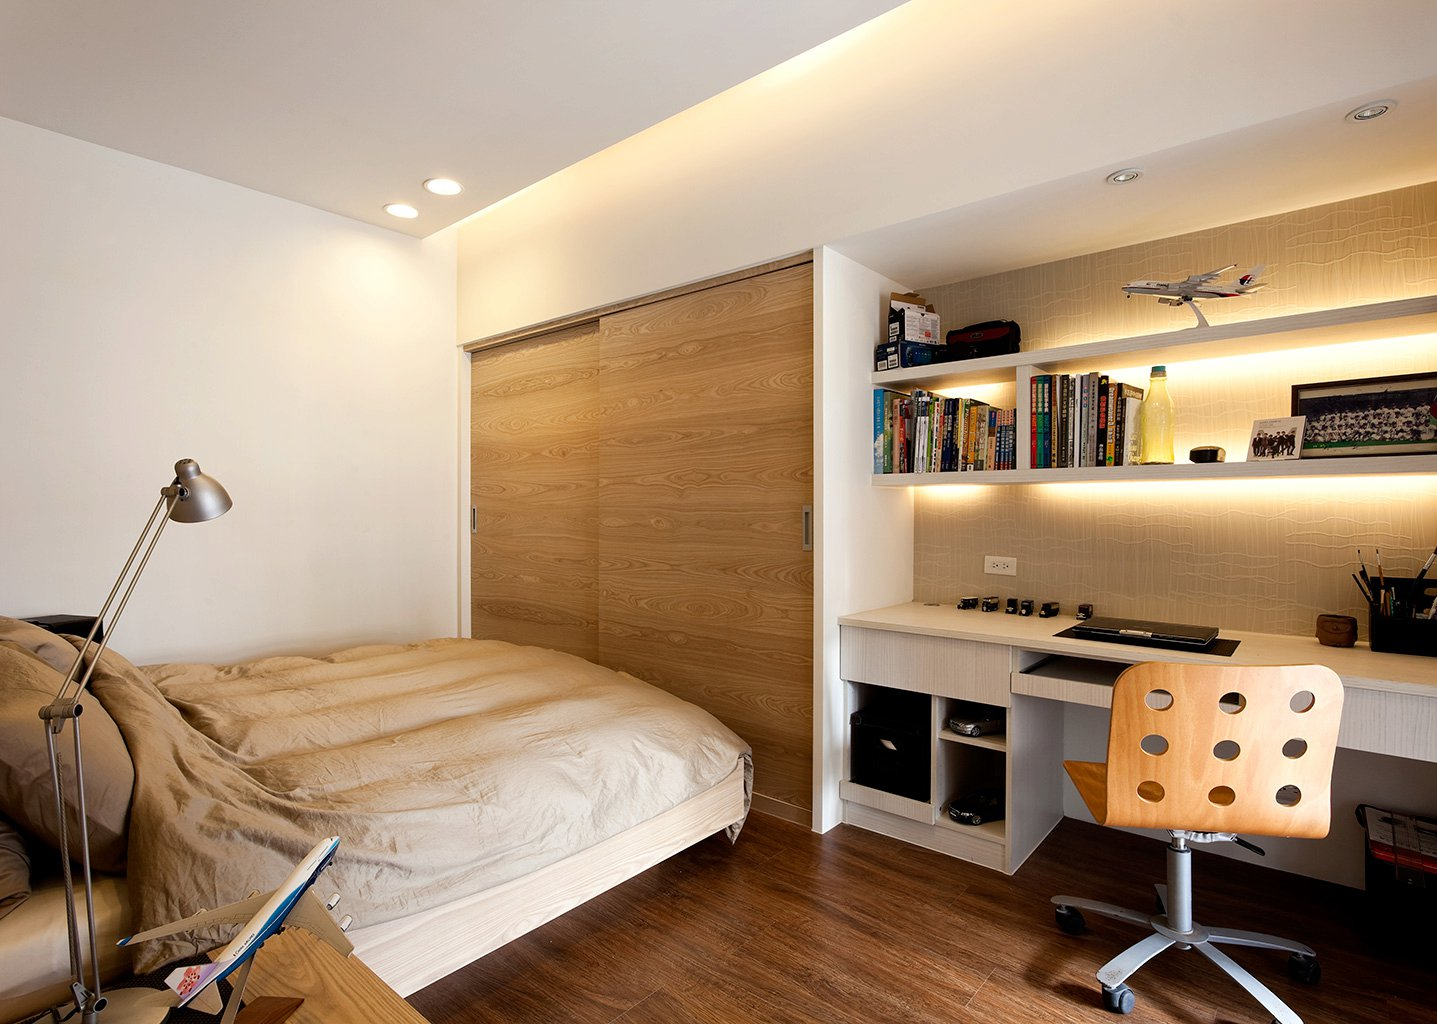 Modern minimalist decor with a homey flow for Compact bedroom ideas